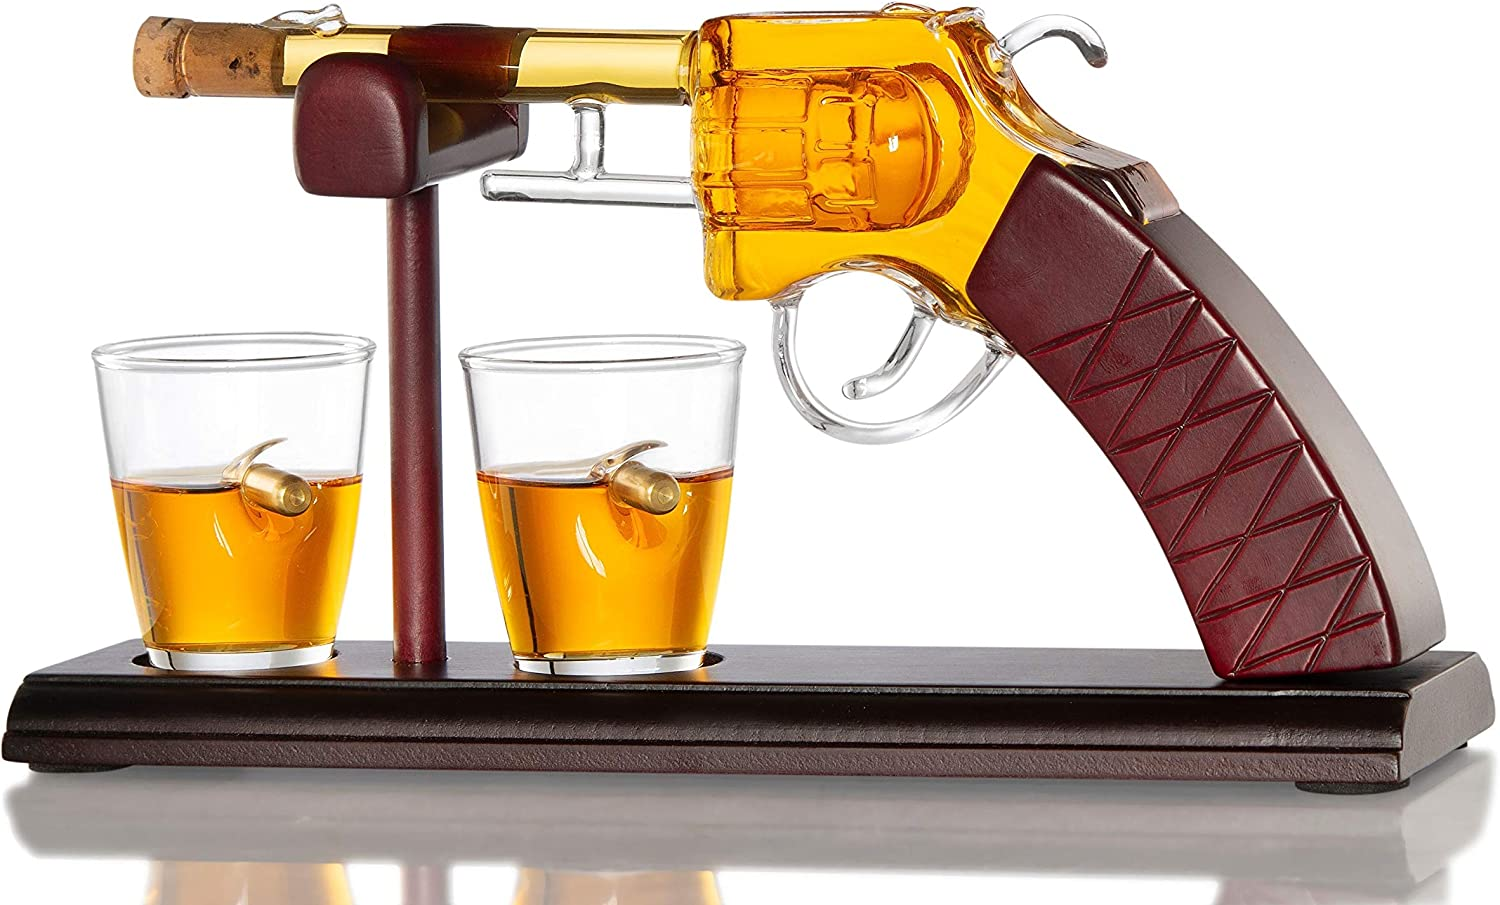 Gun Whiskey Decanter By The Diamond Glassware   Comes With A Set Of 2 Bullet Glasses & Mahogany Wooden Base   Decanter Set, Perfect For Whiskey, Bourbon, Scotch, Liquor  Great Gift For Him   100ml